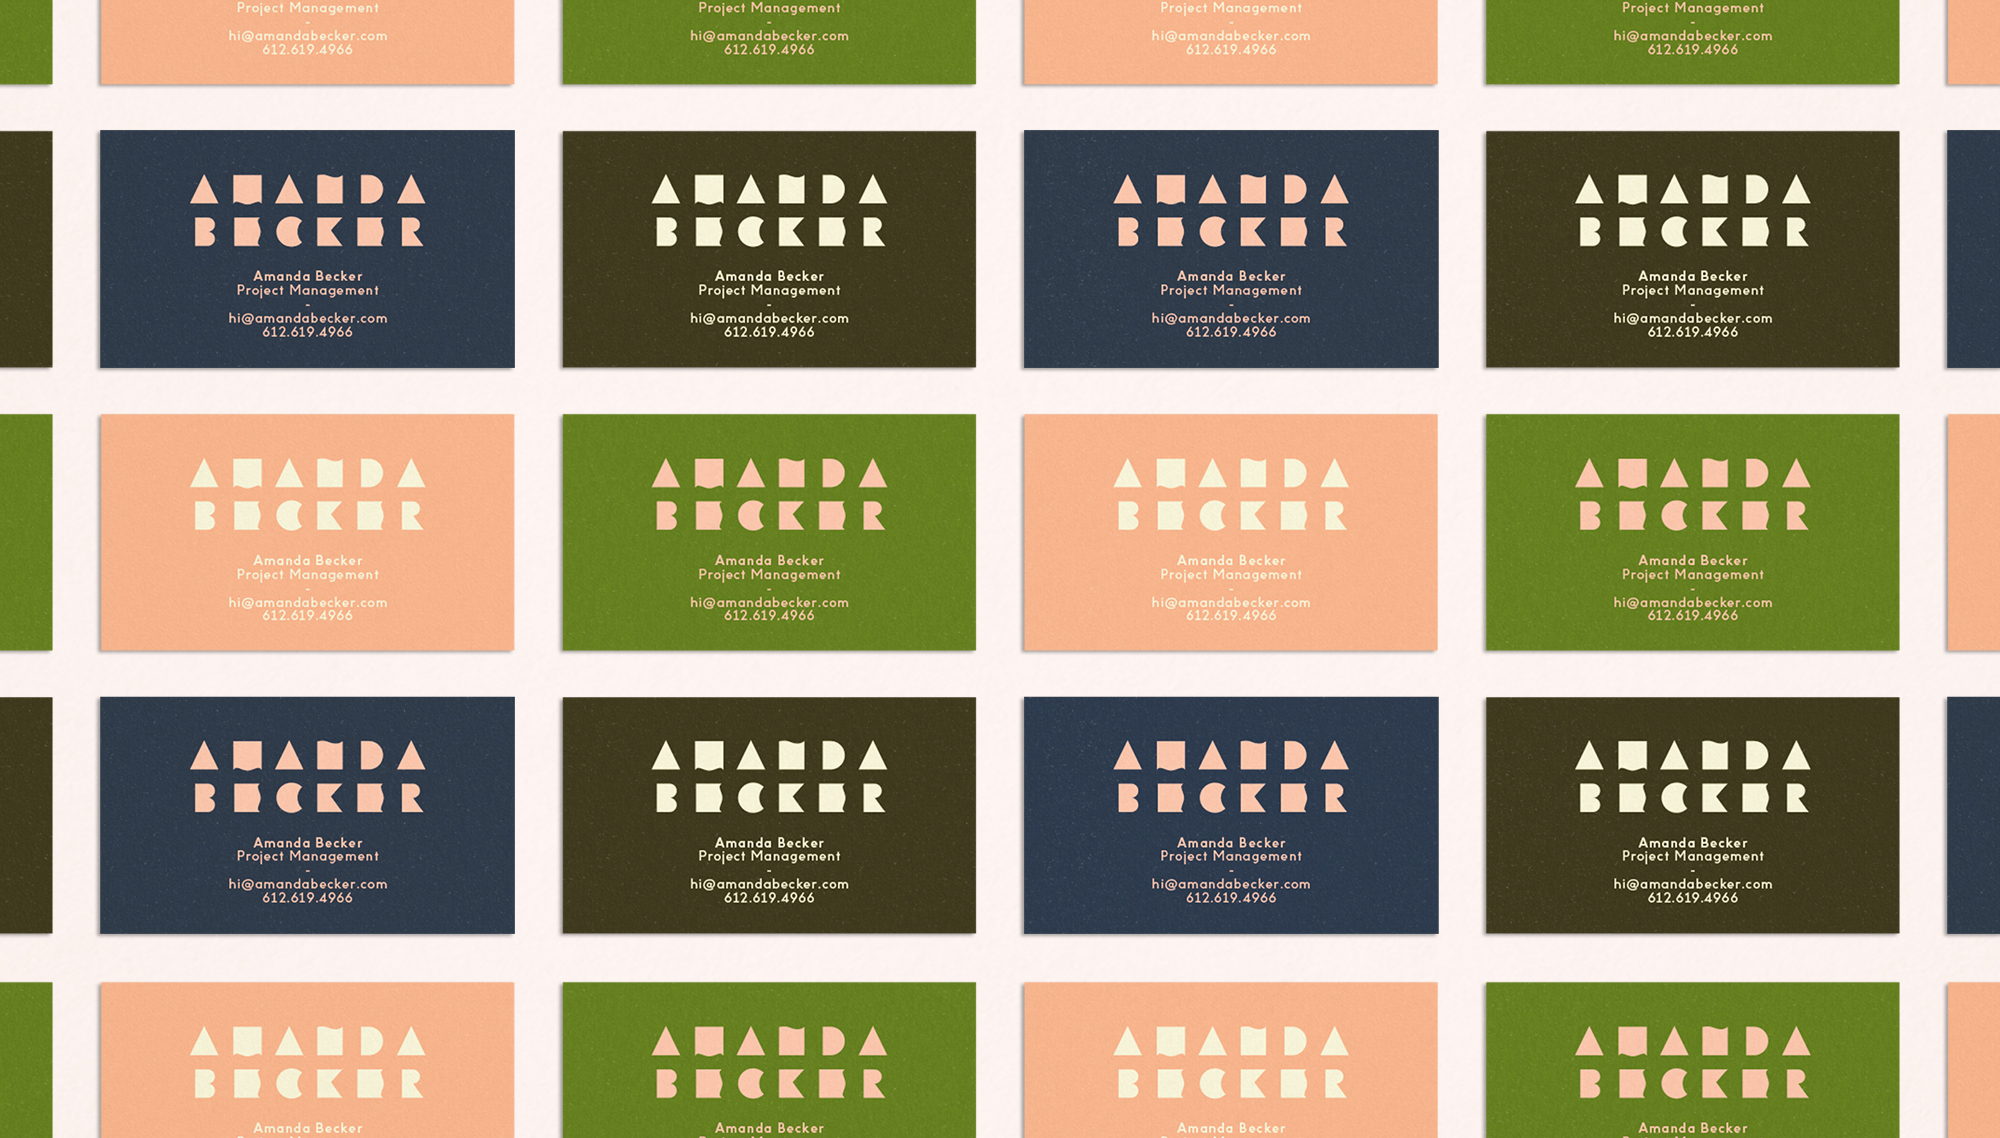 Amanda Becker business cards designed by Abby Haddican Studio.